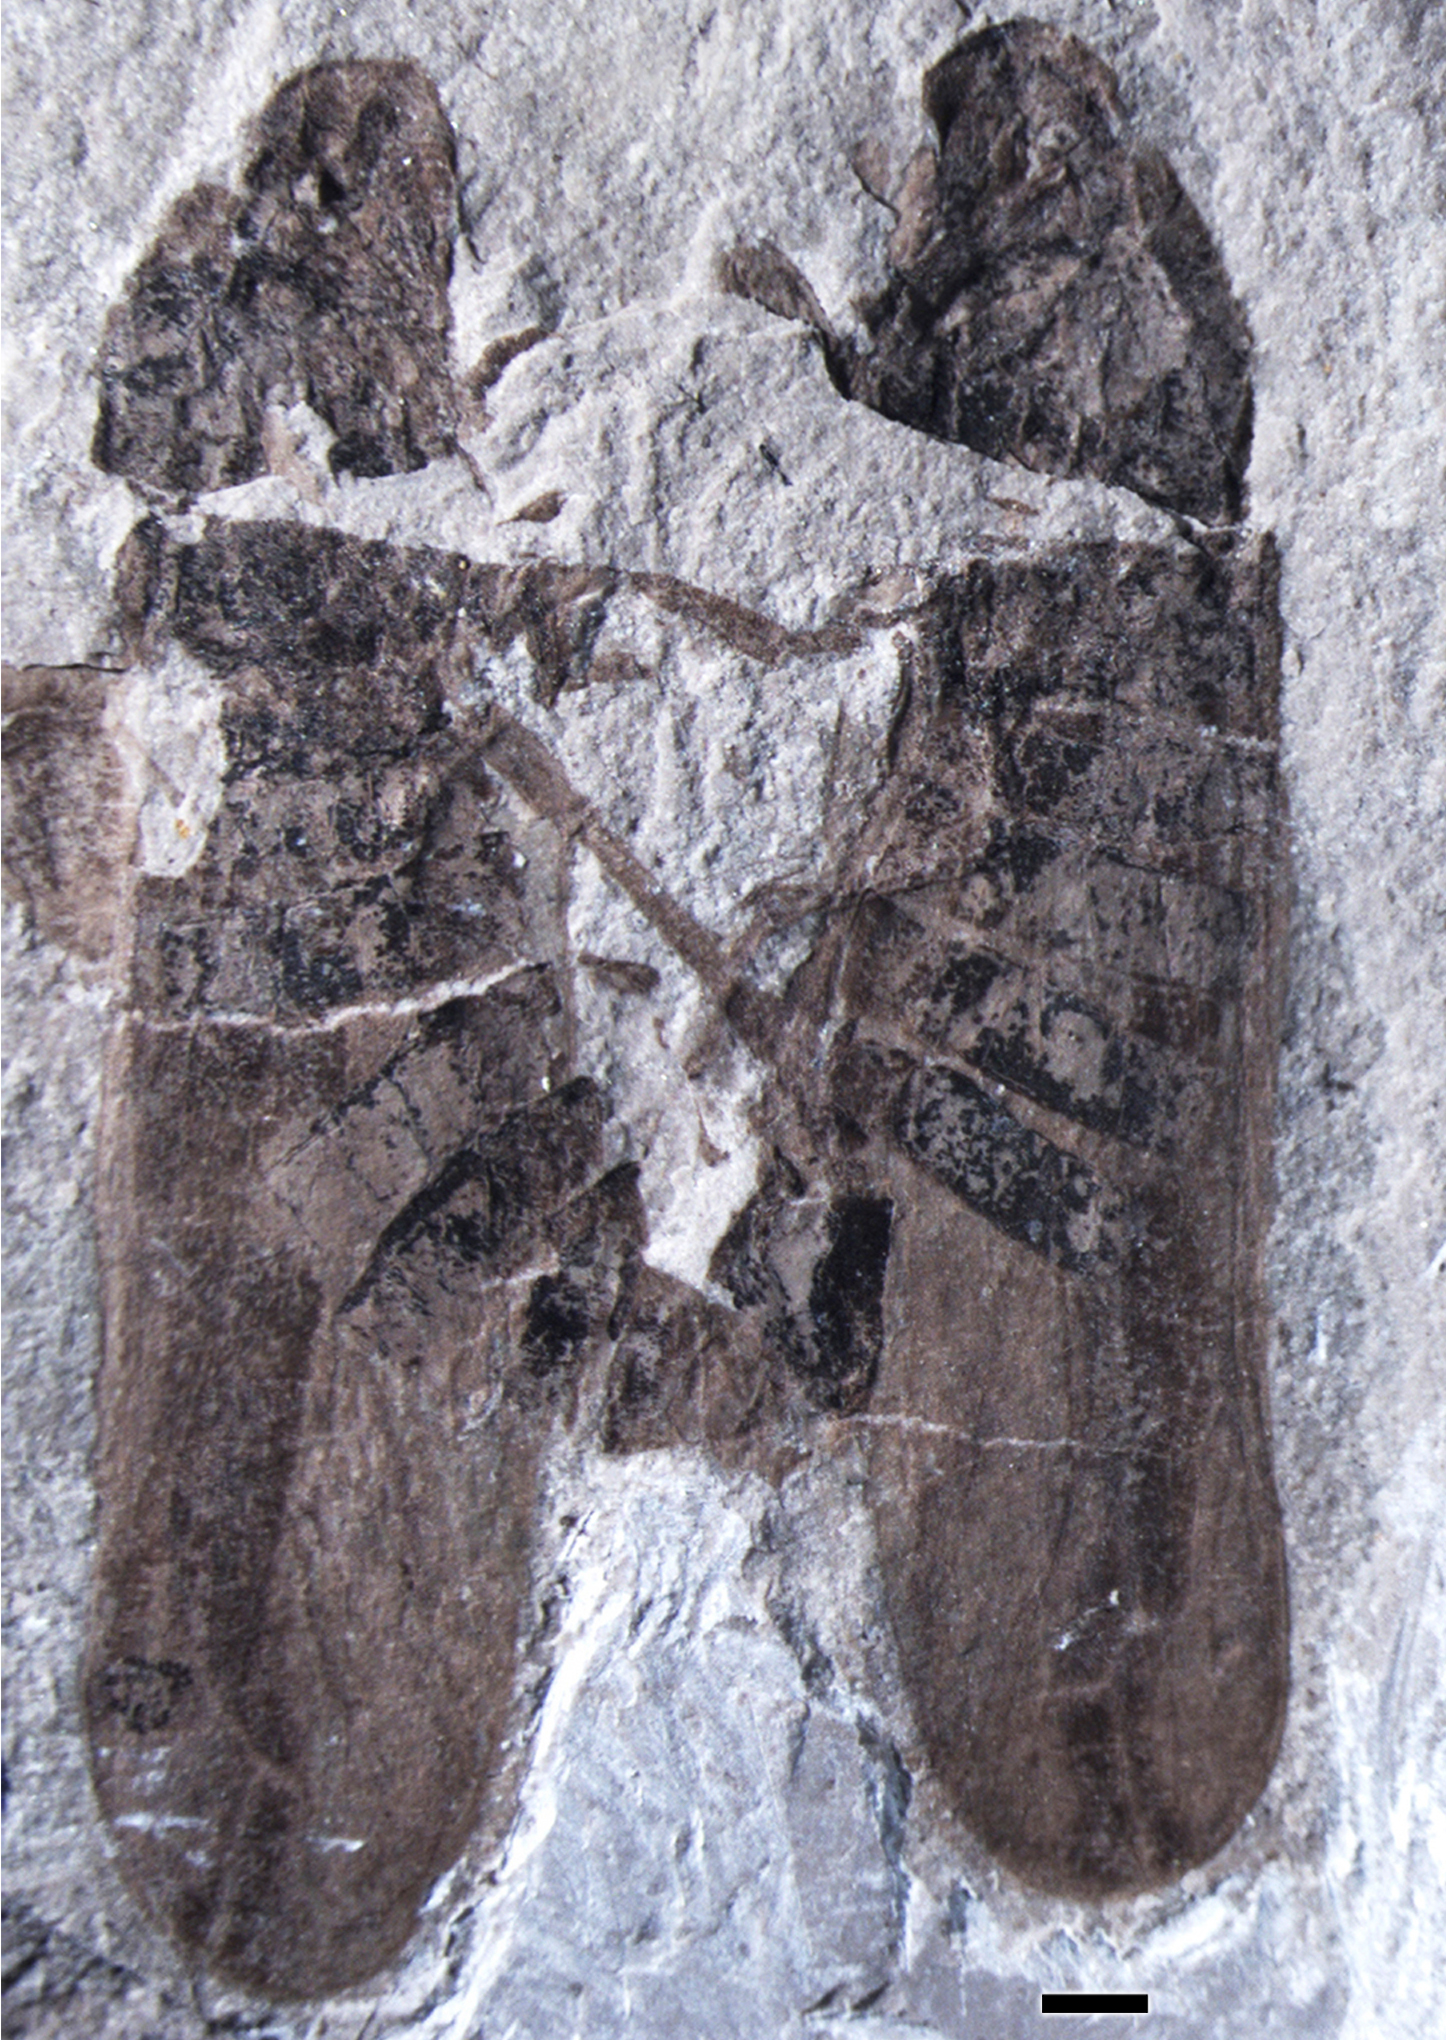 Two mating froghopper insects perfectly preserved in a 165 million-year-old Jurassic rock from Inner Mongolia. Photo courtesy of Professor Dong Ren.